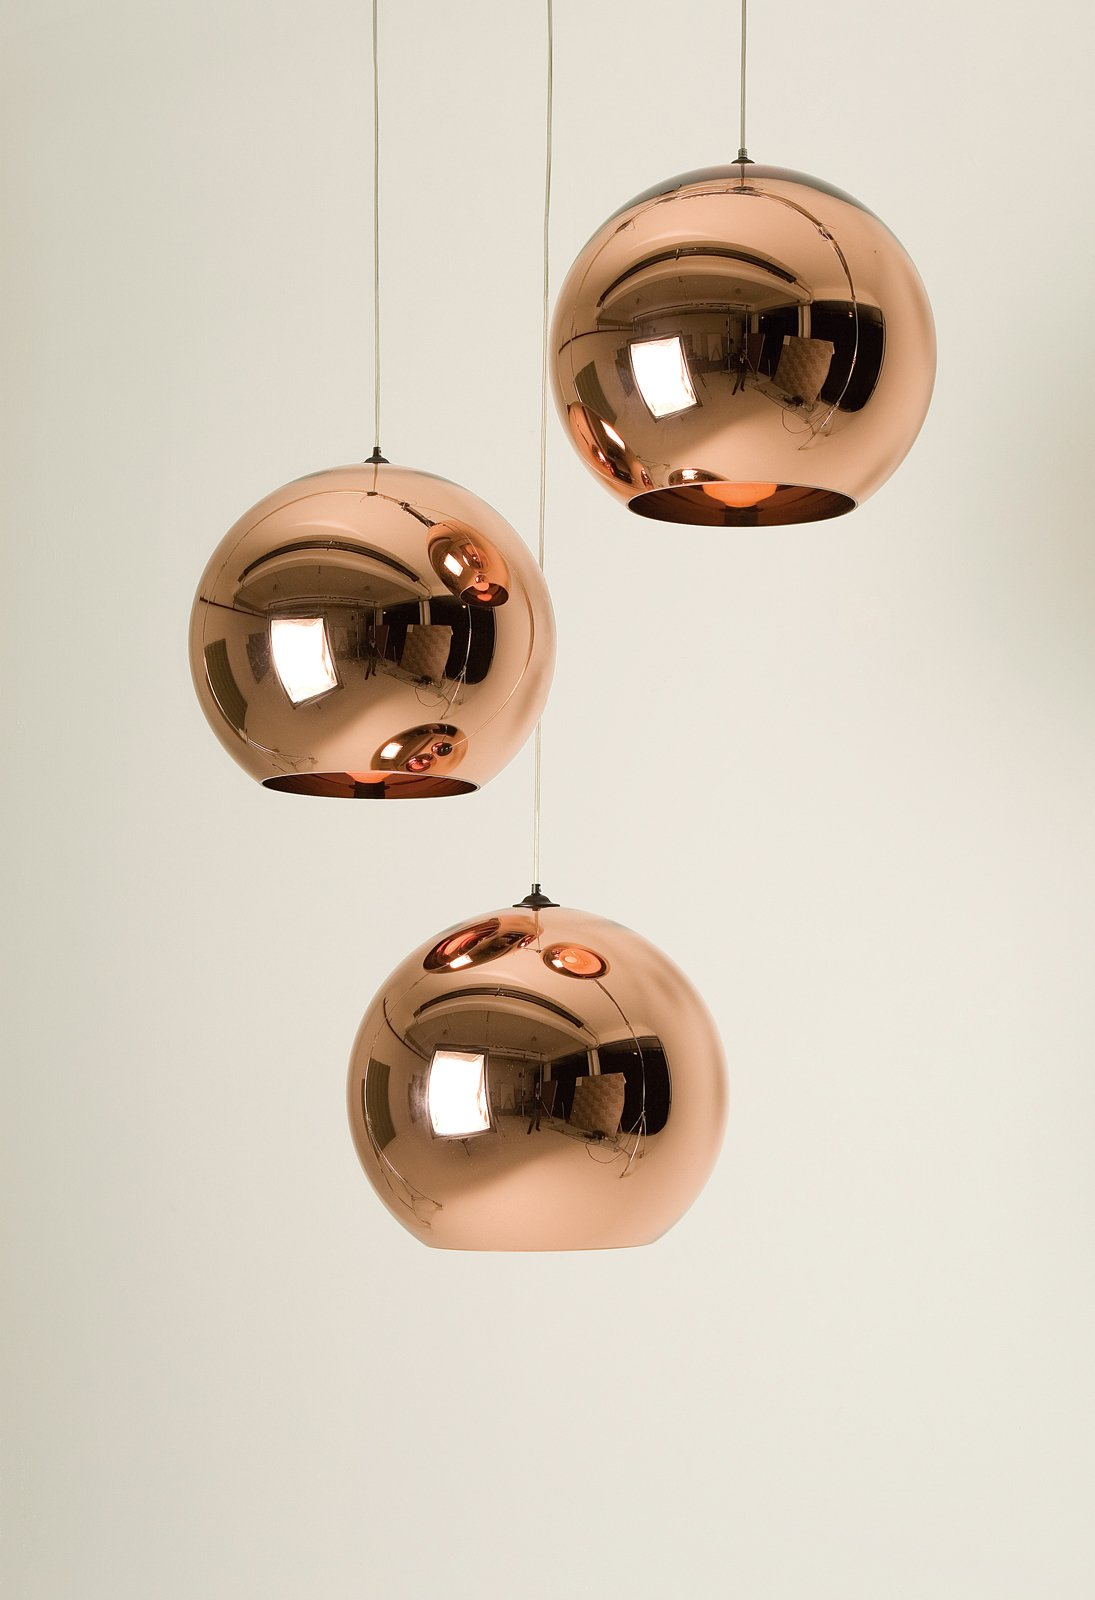 Tom Dixon's Copper Shade pendant lamps reflect his background in metalwork.  Photo 3 of 8 in Tom Dixon